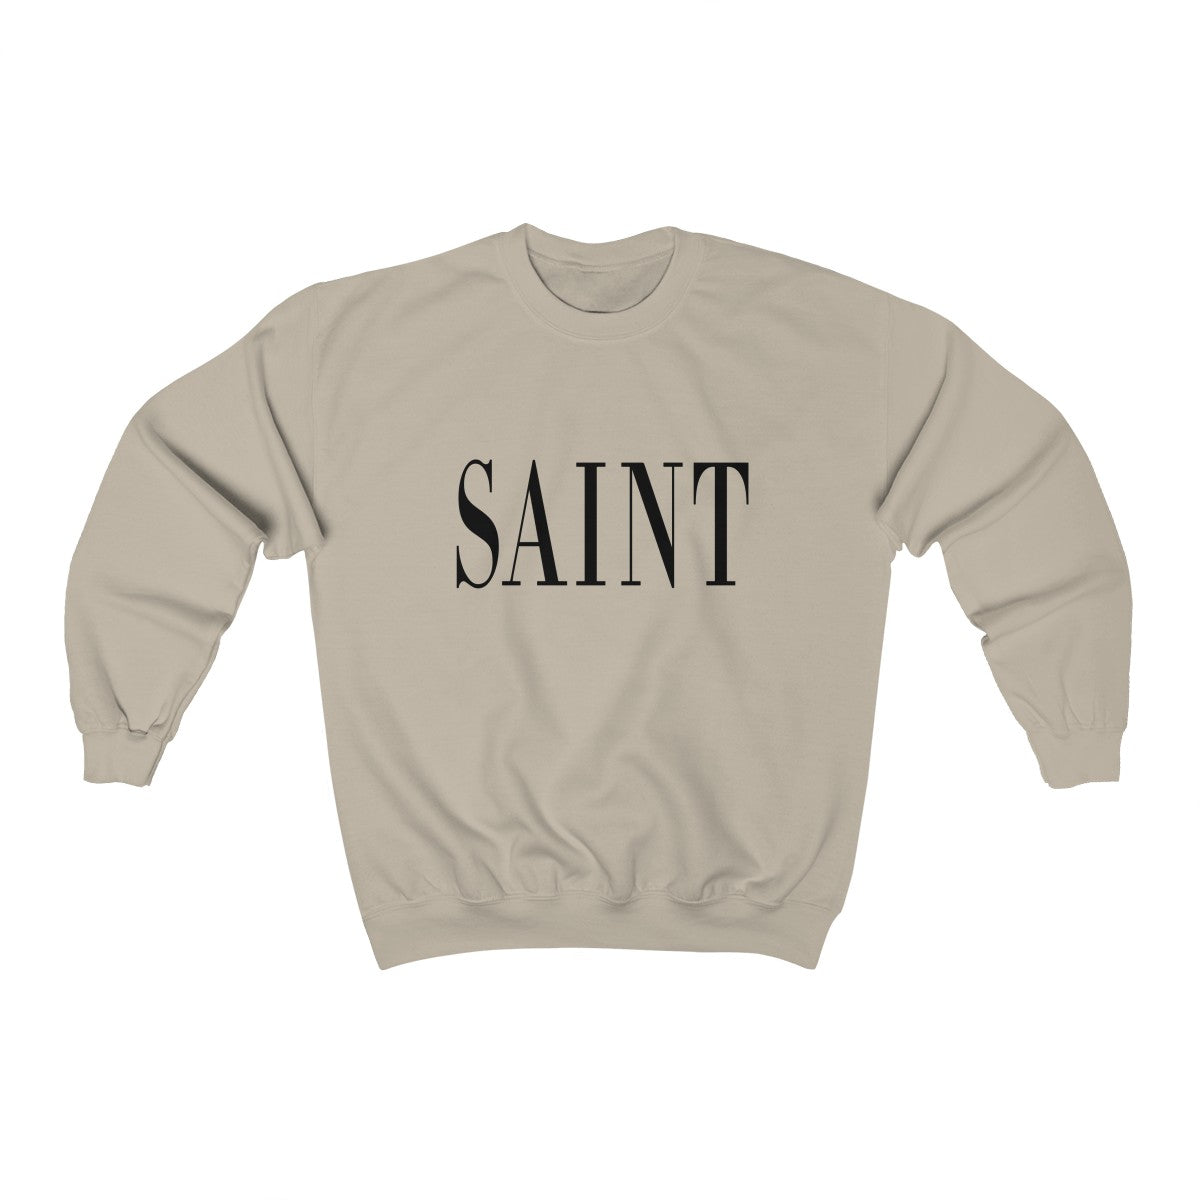 SAINT SWEATSHIRT